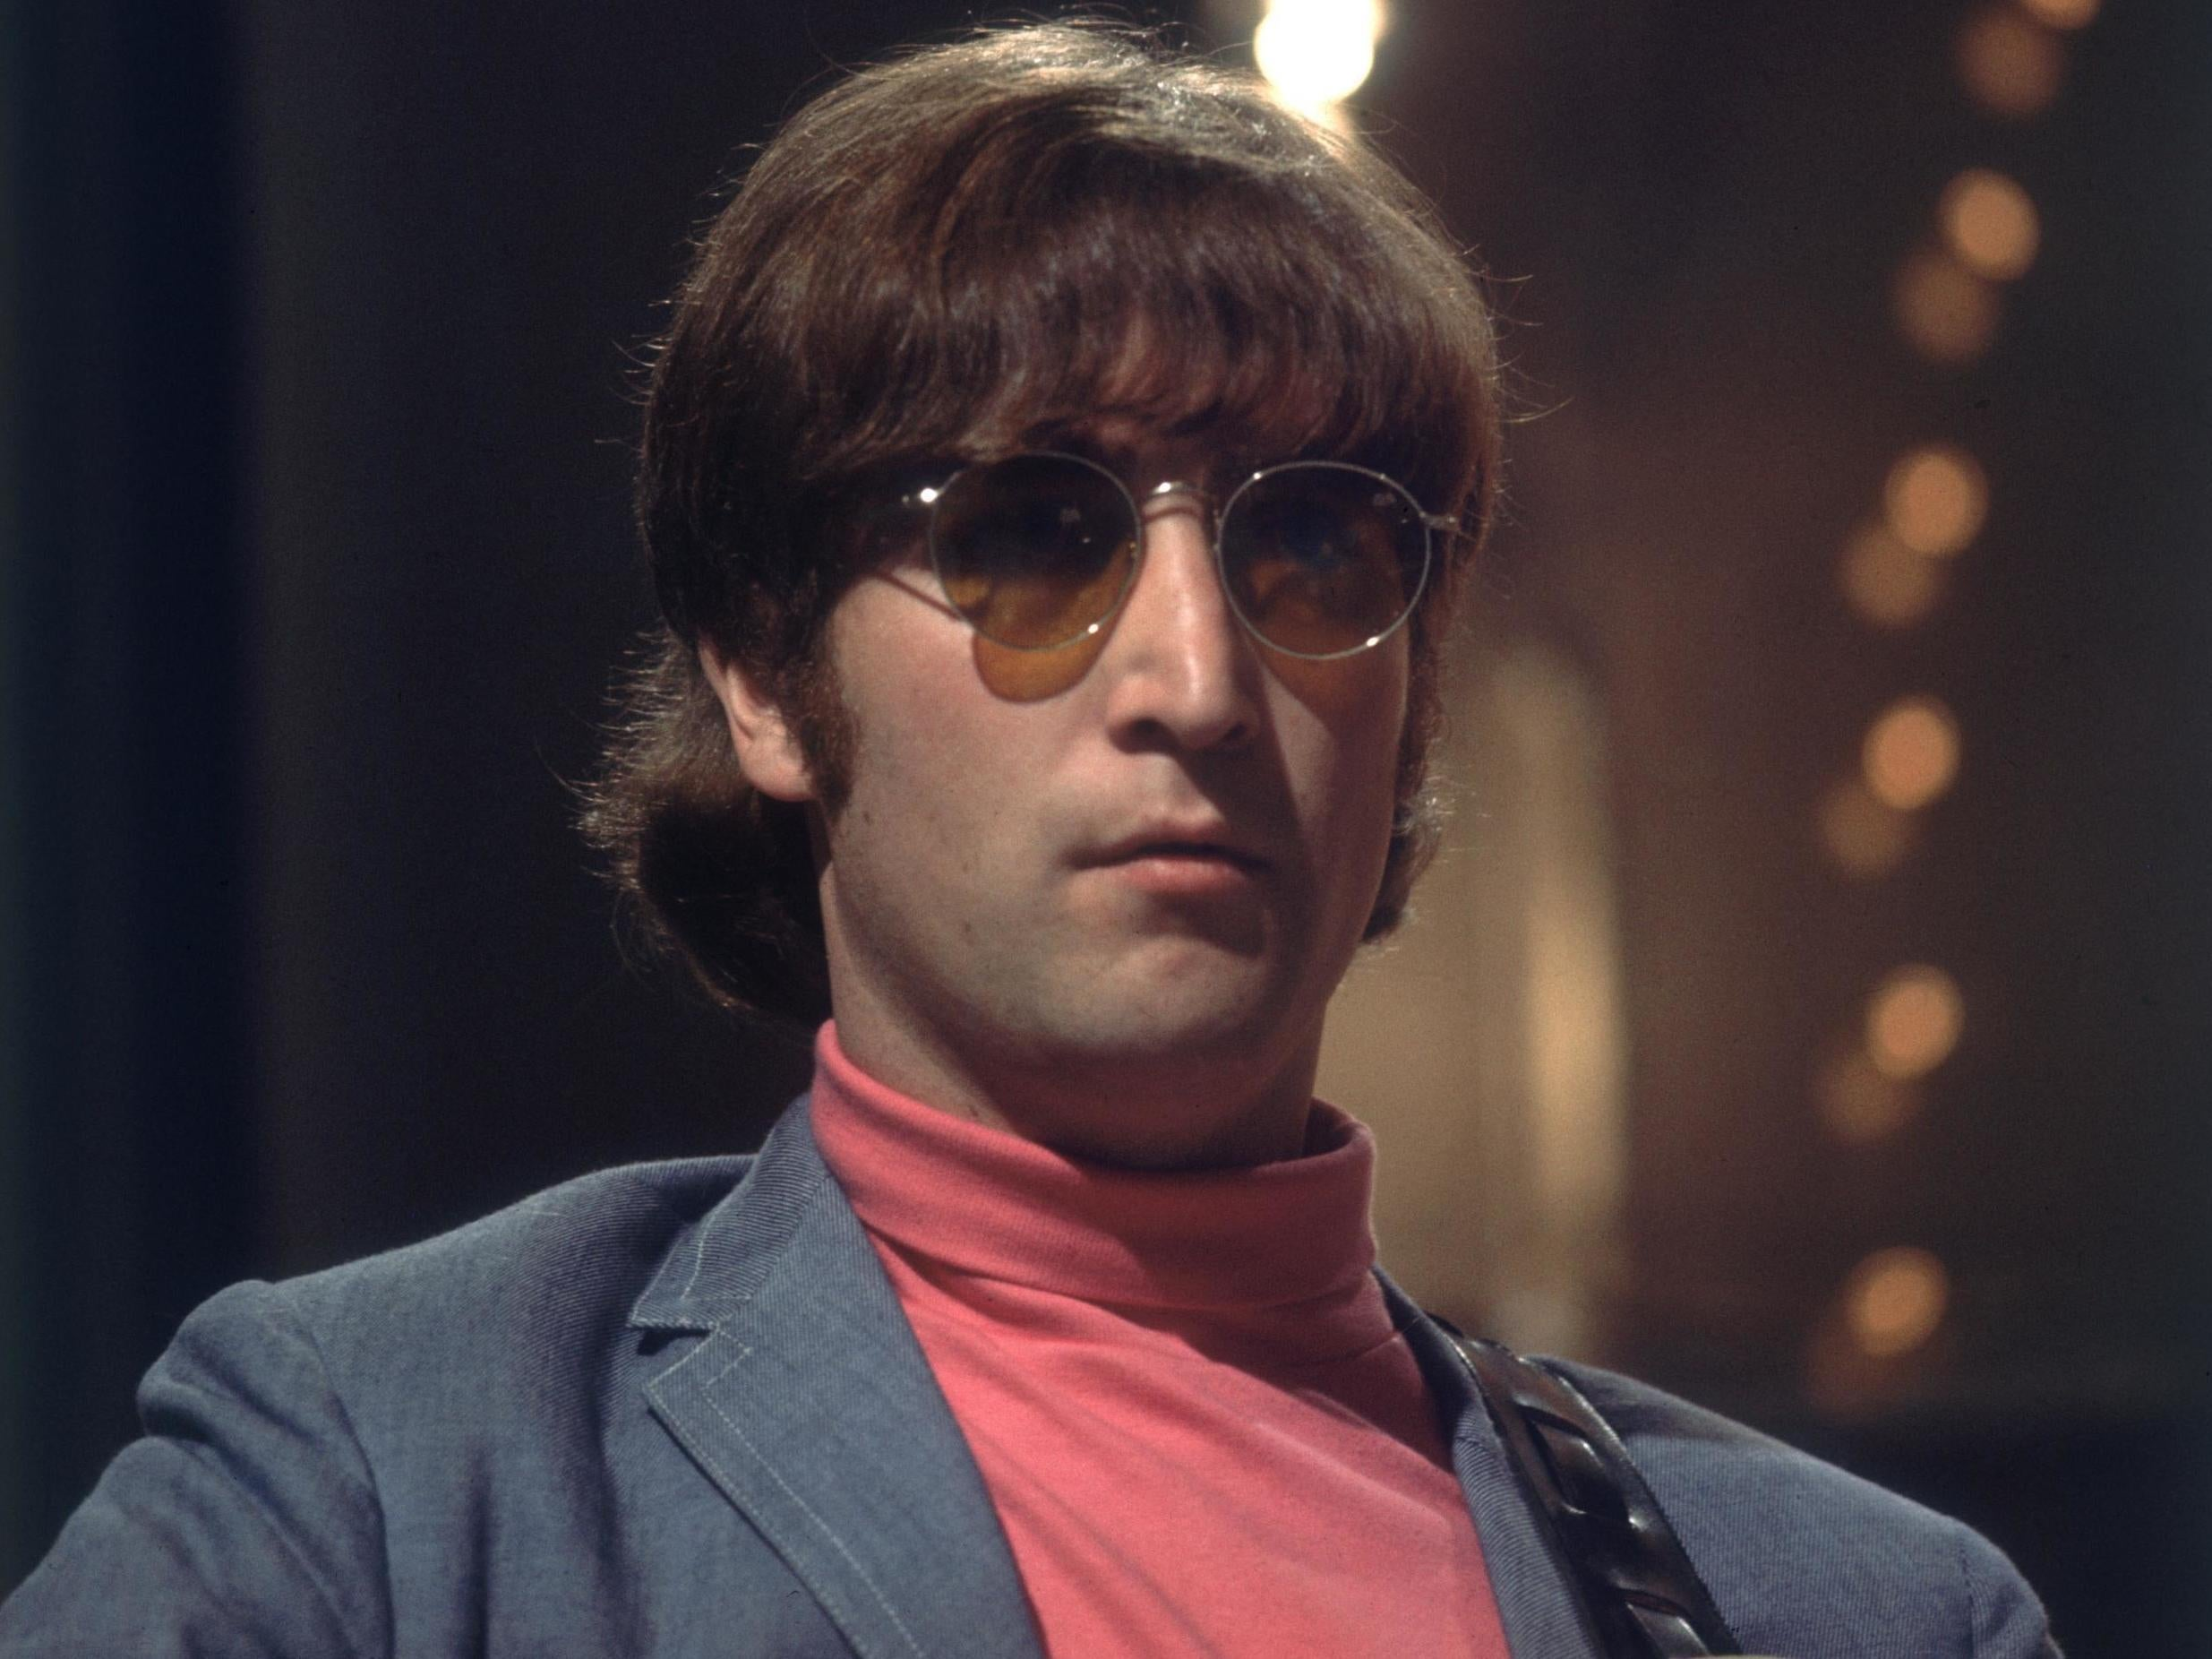 John Lennon's iconic round sunglasses sell for £137,000 at auction